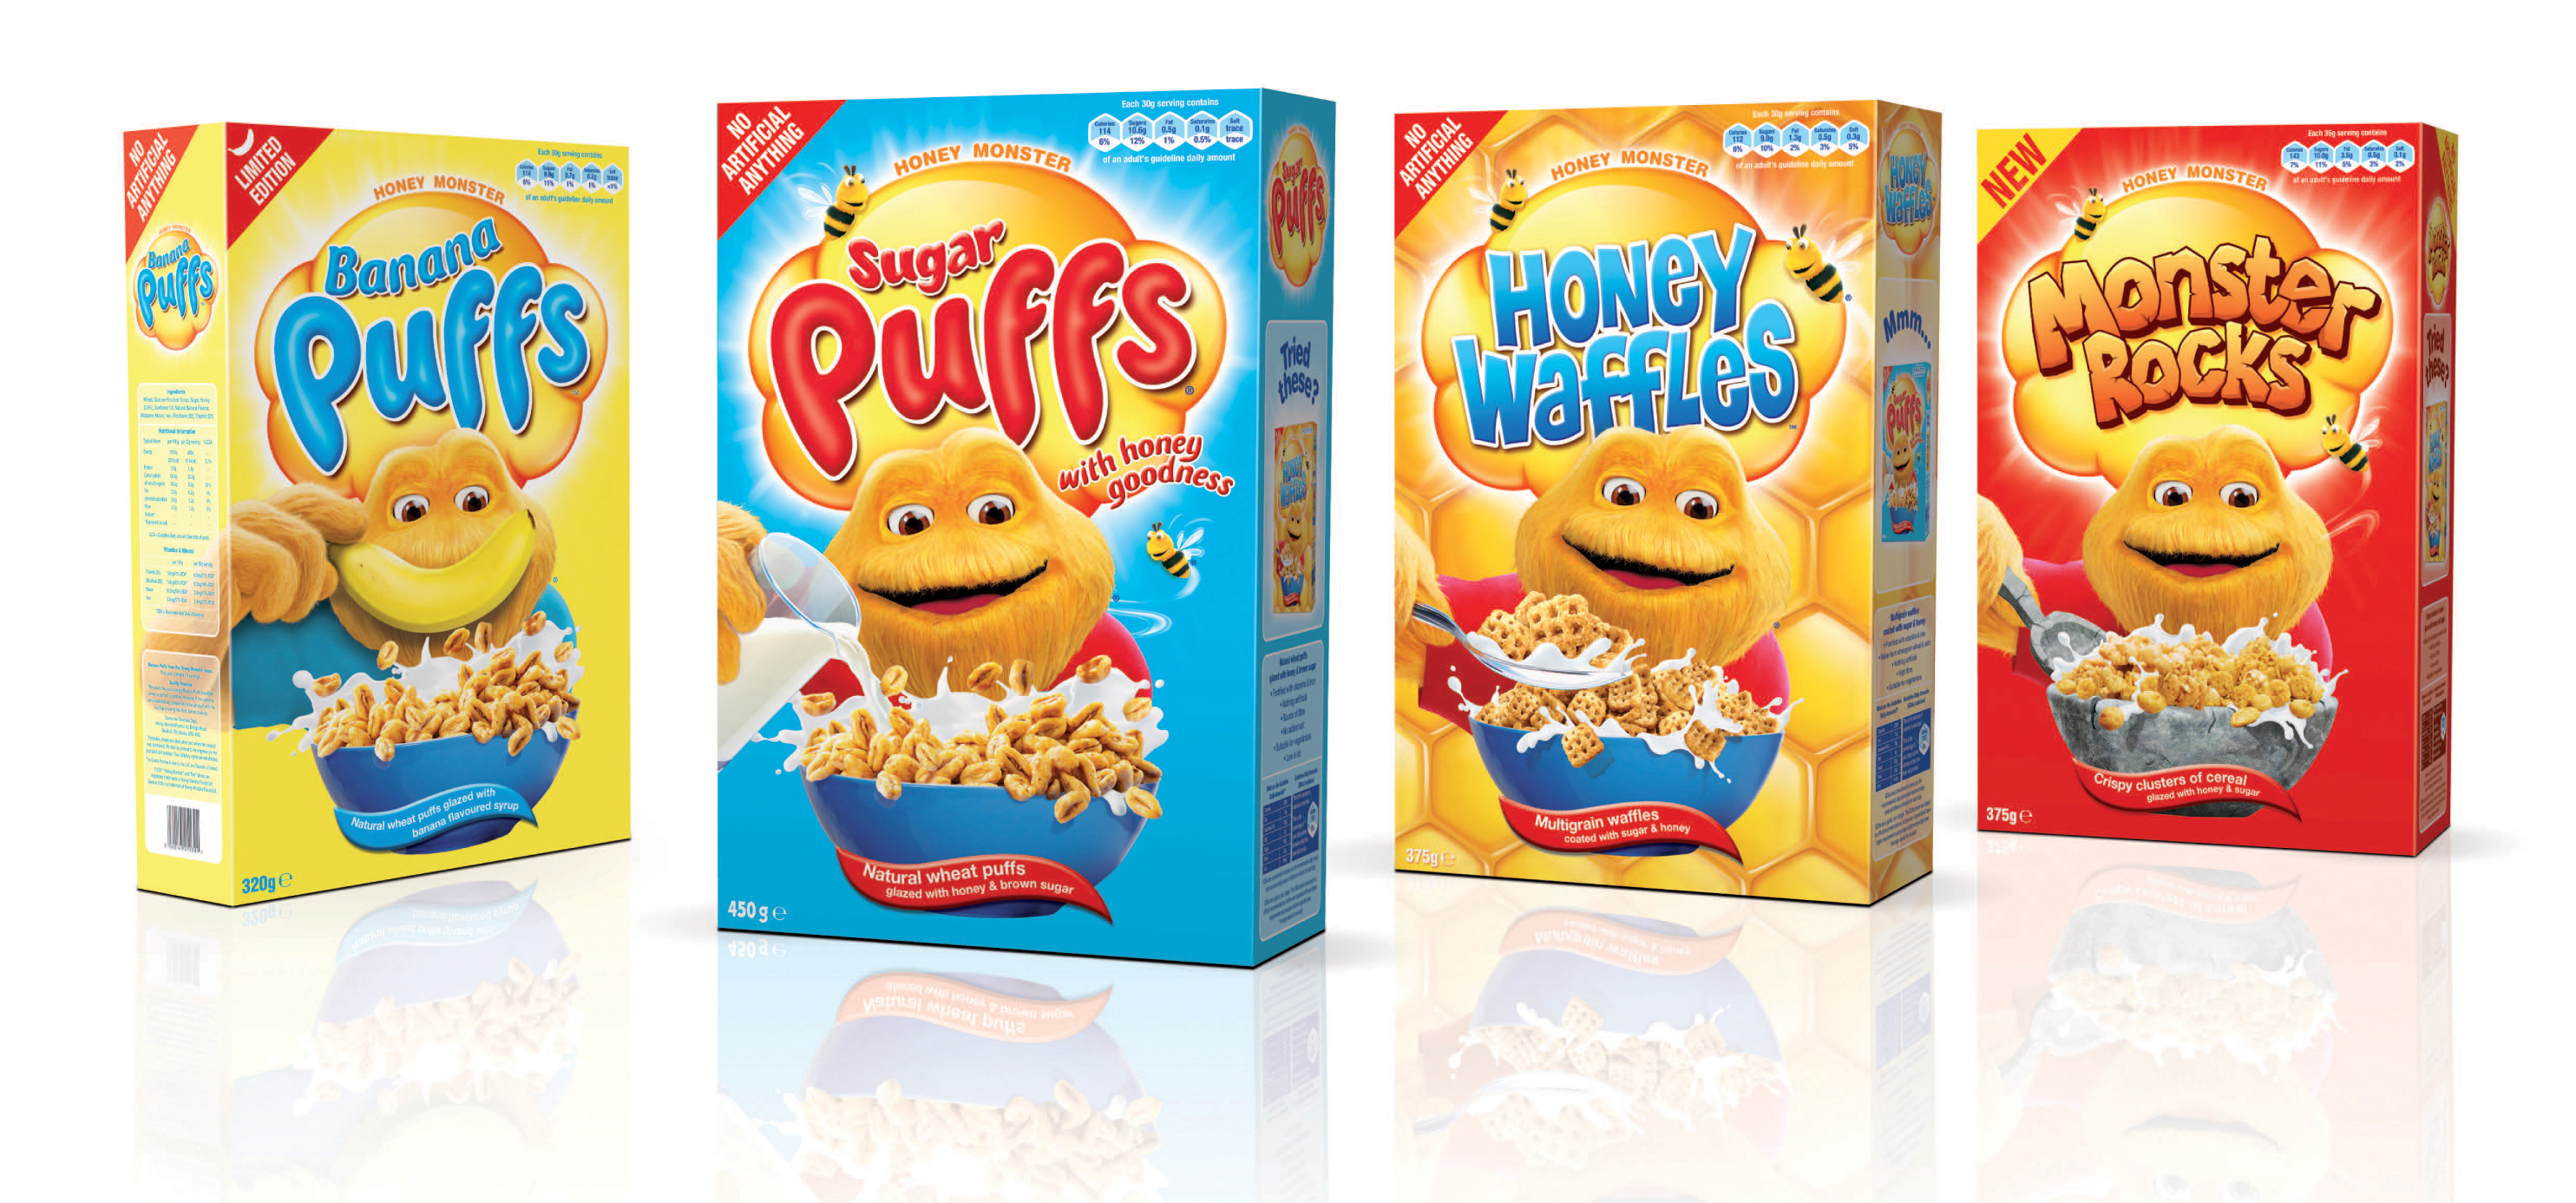 sugar puff golden sugar puffs sugar puffs sugar puffs cereal sugar